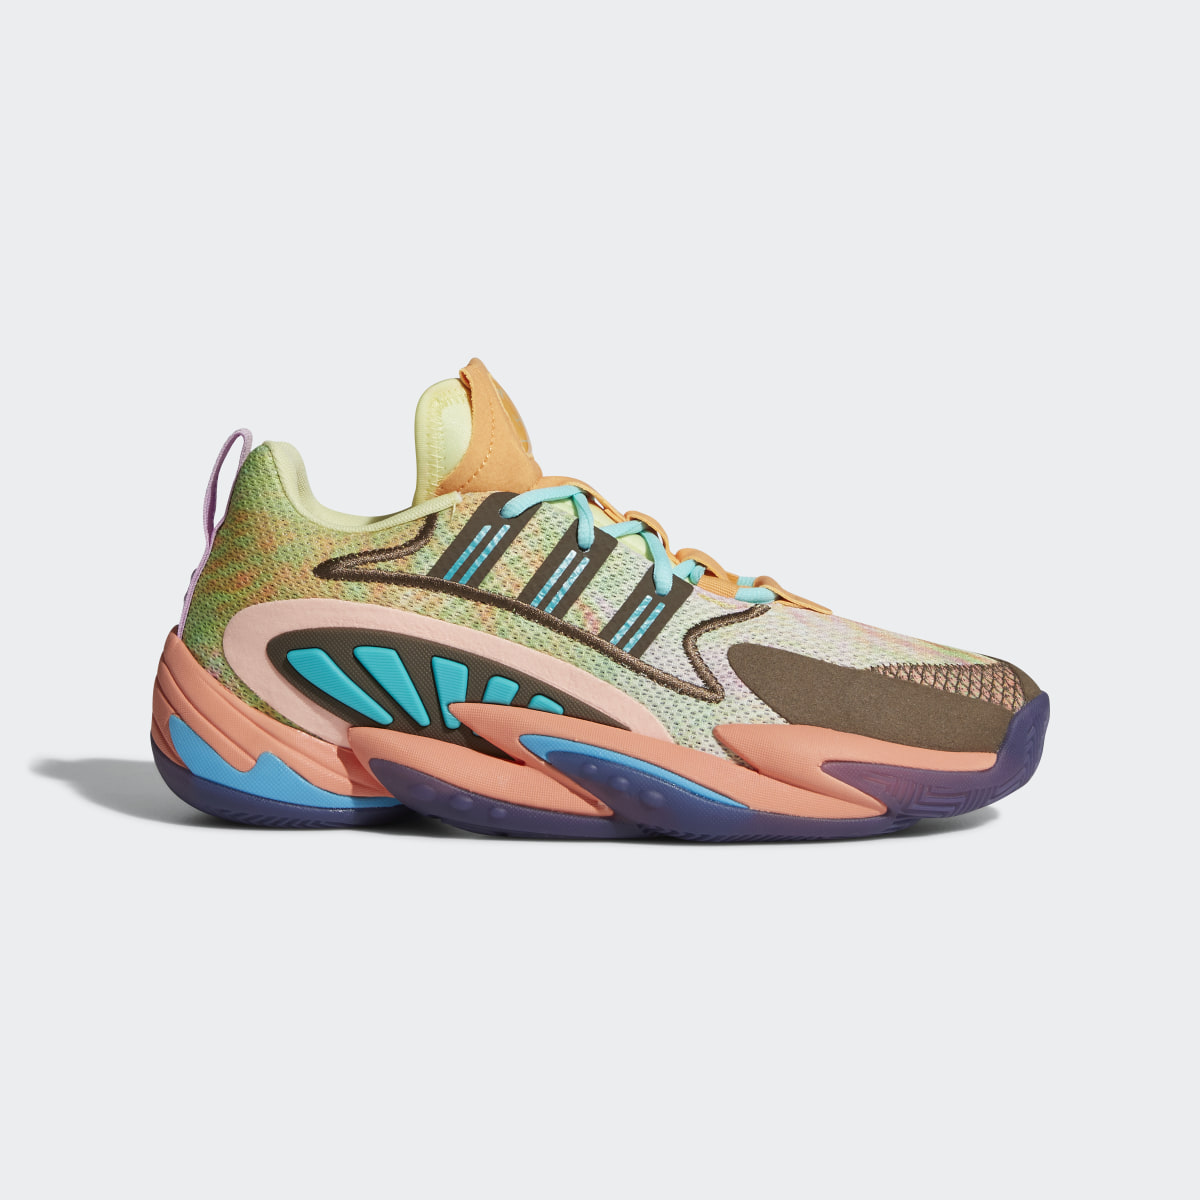 Crazy BYW 2.0 Pharrell Williams Shoes